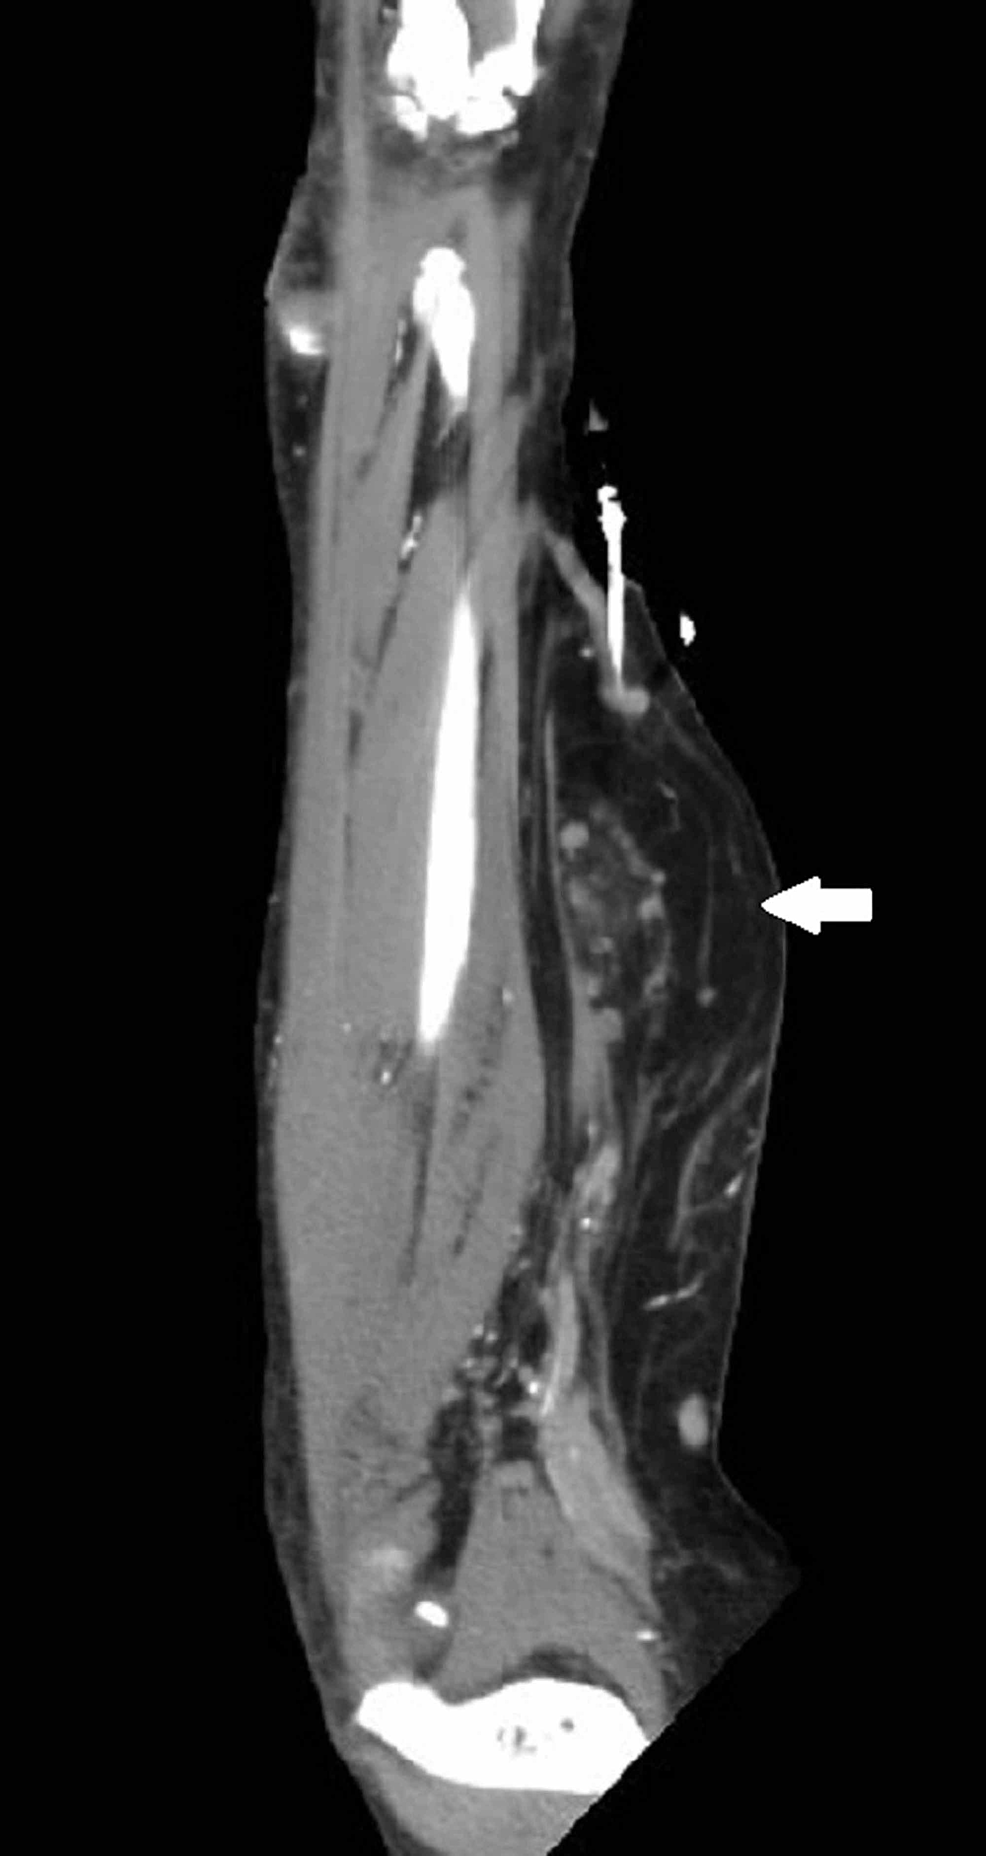 Coronal-reformatted-CT-also-showing-a-right-forearm-mass-(thick-white-arrow)-concerning-for-atypical-lipomatous-tumor-or-liposarcoma.